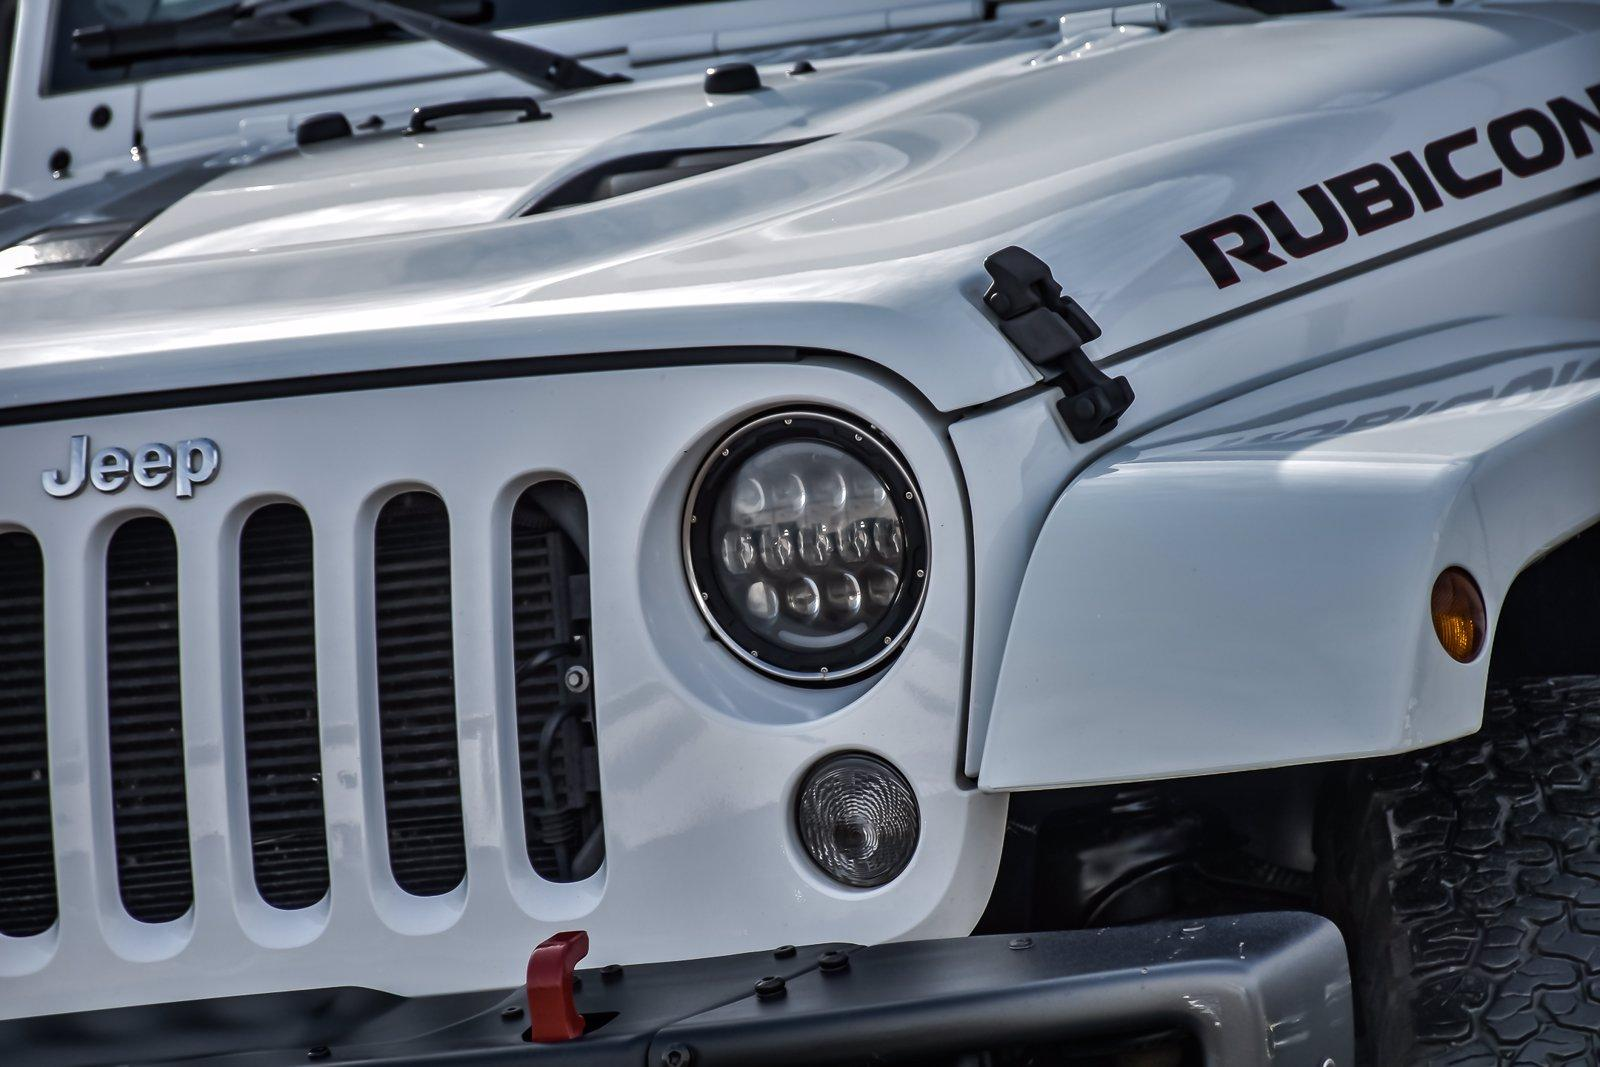 Used 2016 Jeep Wrangler Unlimited Rubicon Hard Rock | Downers Grove, IL